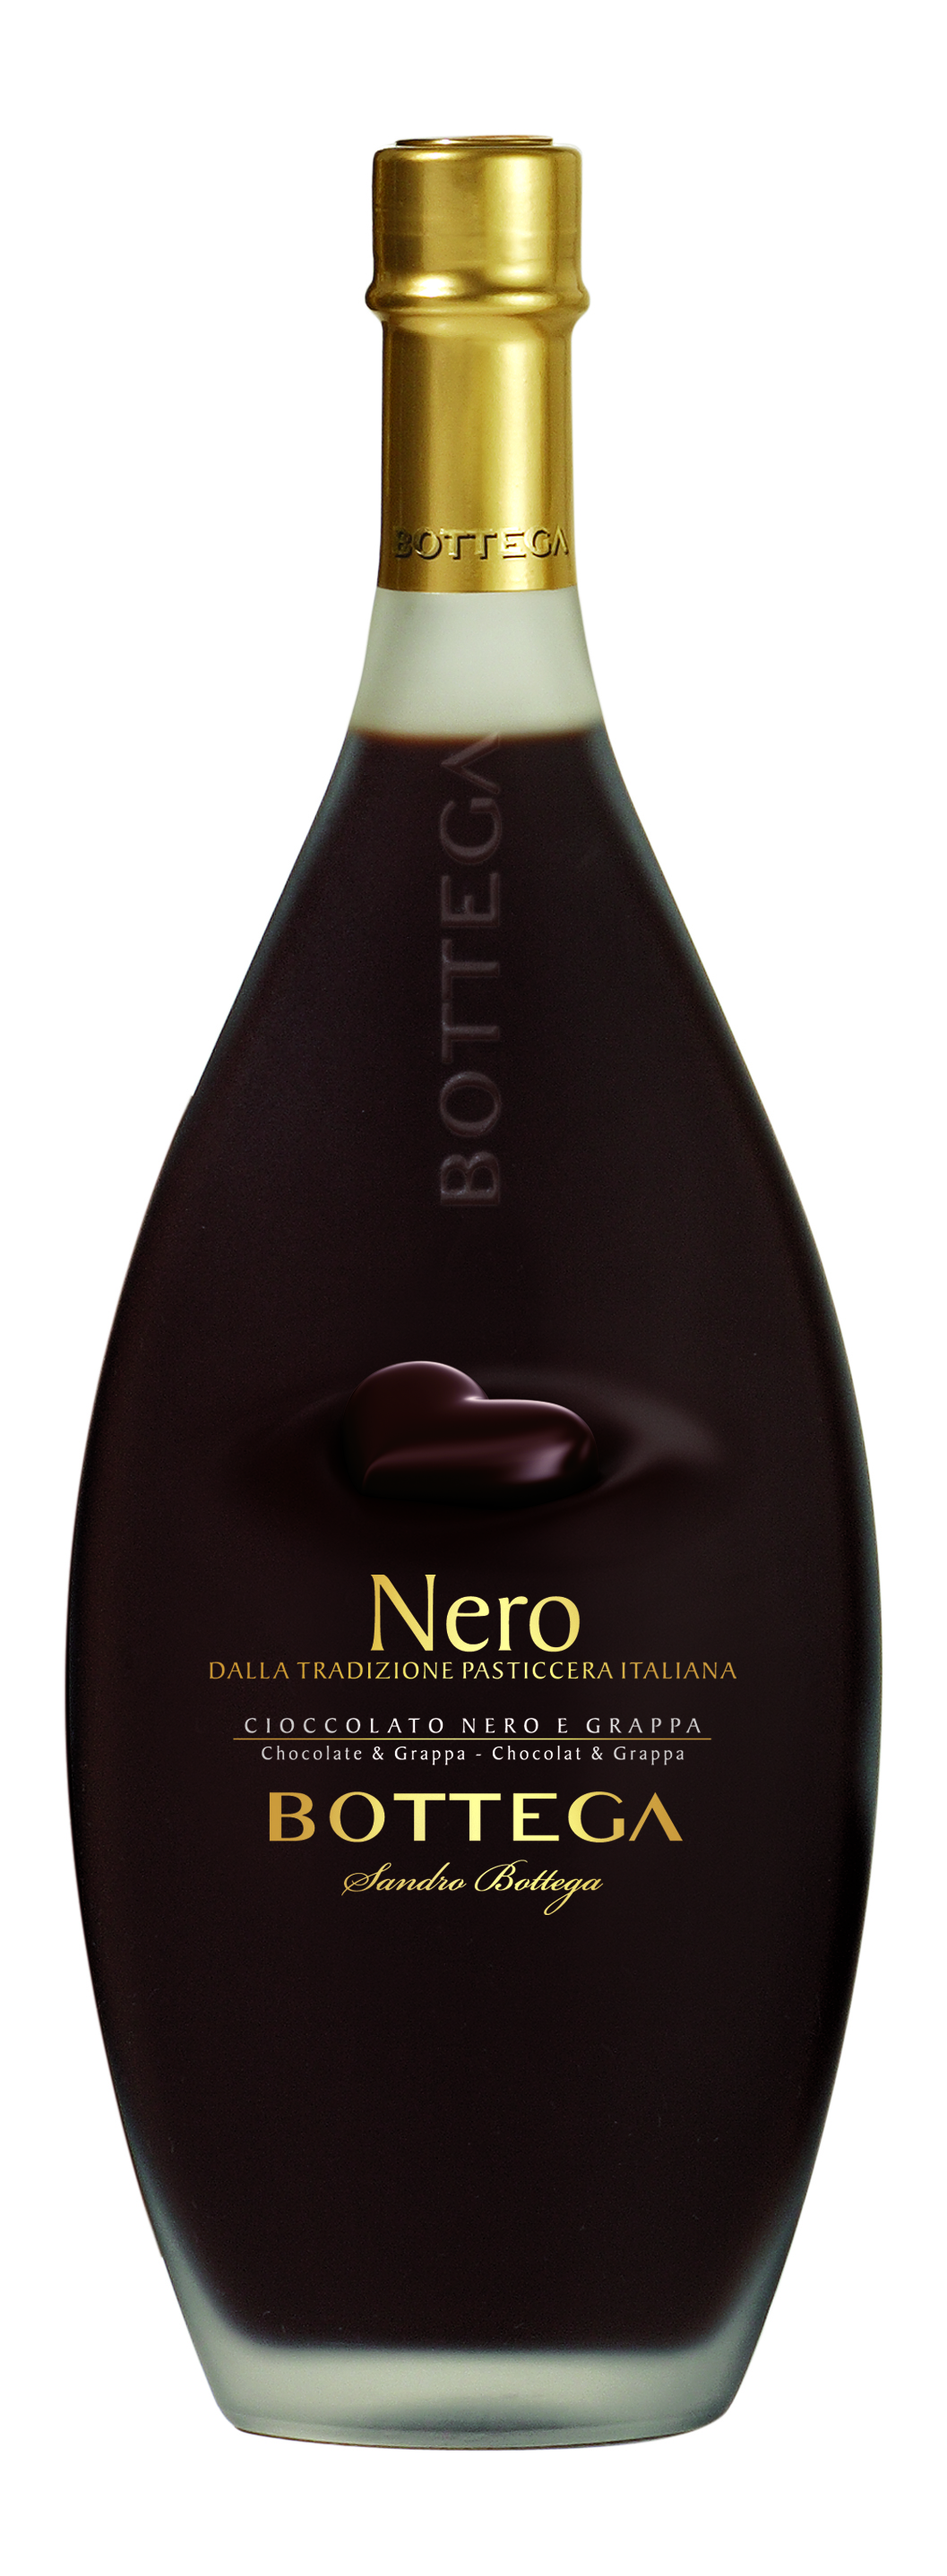 Nero e Grappa 0,50 l Bottega